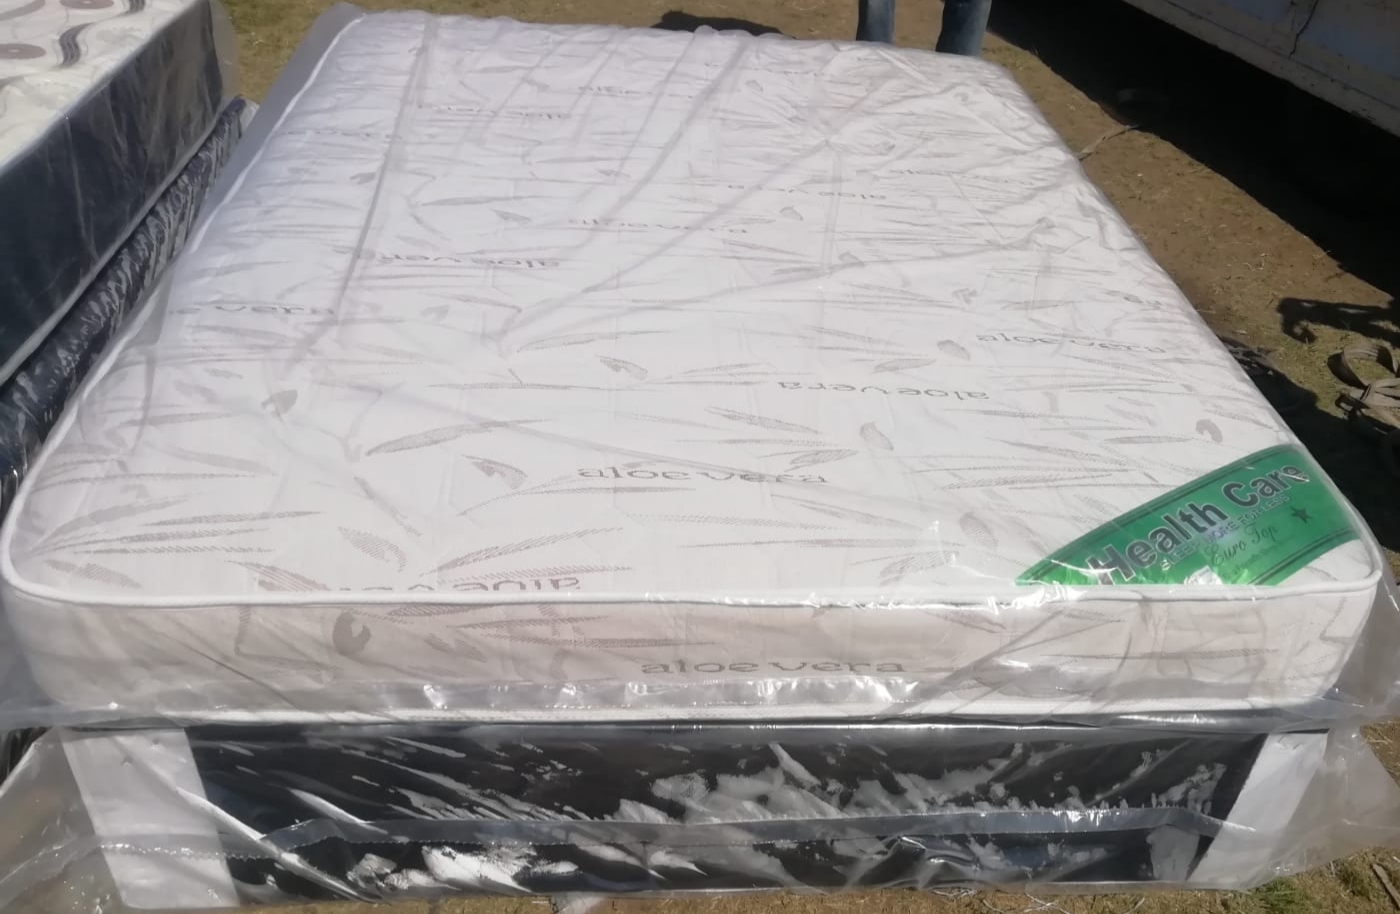 Double Beds With Full Foam Mattress For Sale For R1500 Junk Mail